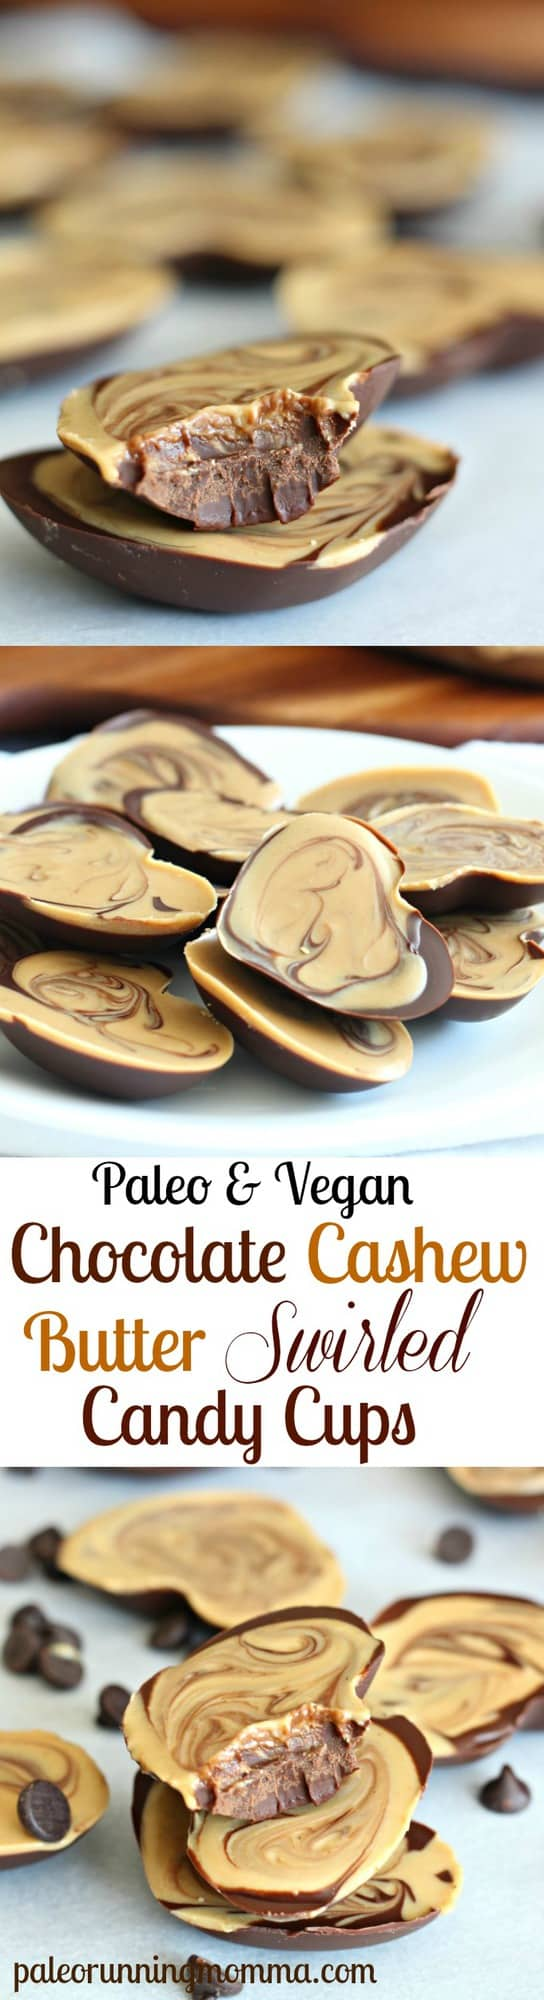 Paleo & Vegan Chocolate Cashew Butter Swirled Candy Cups - So rich and creamy! #dairyfree #grainfree #glutenfree #vegan #paleo #cleaneating